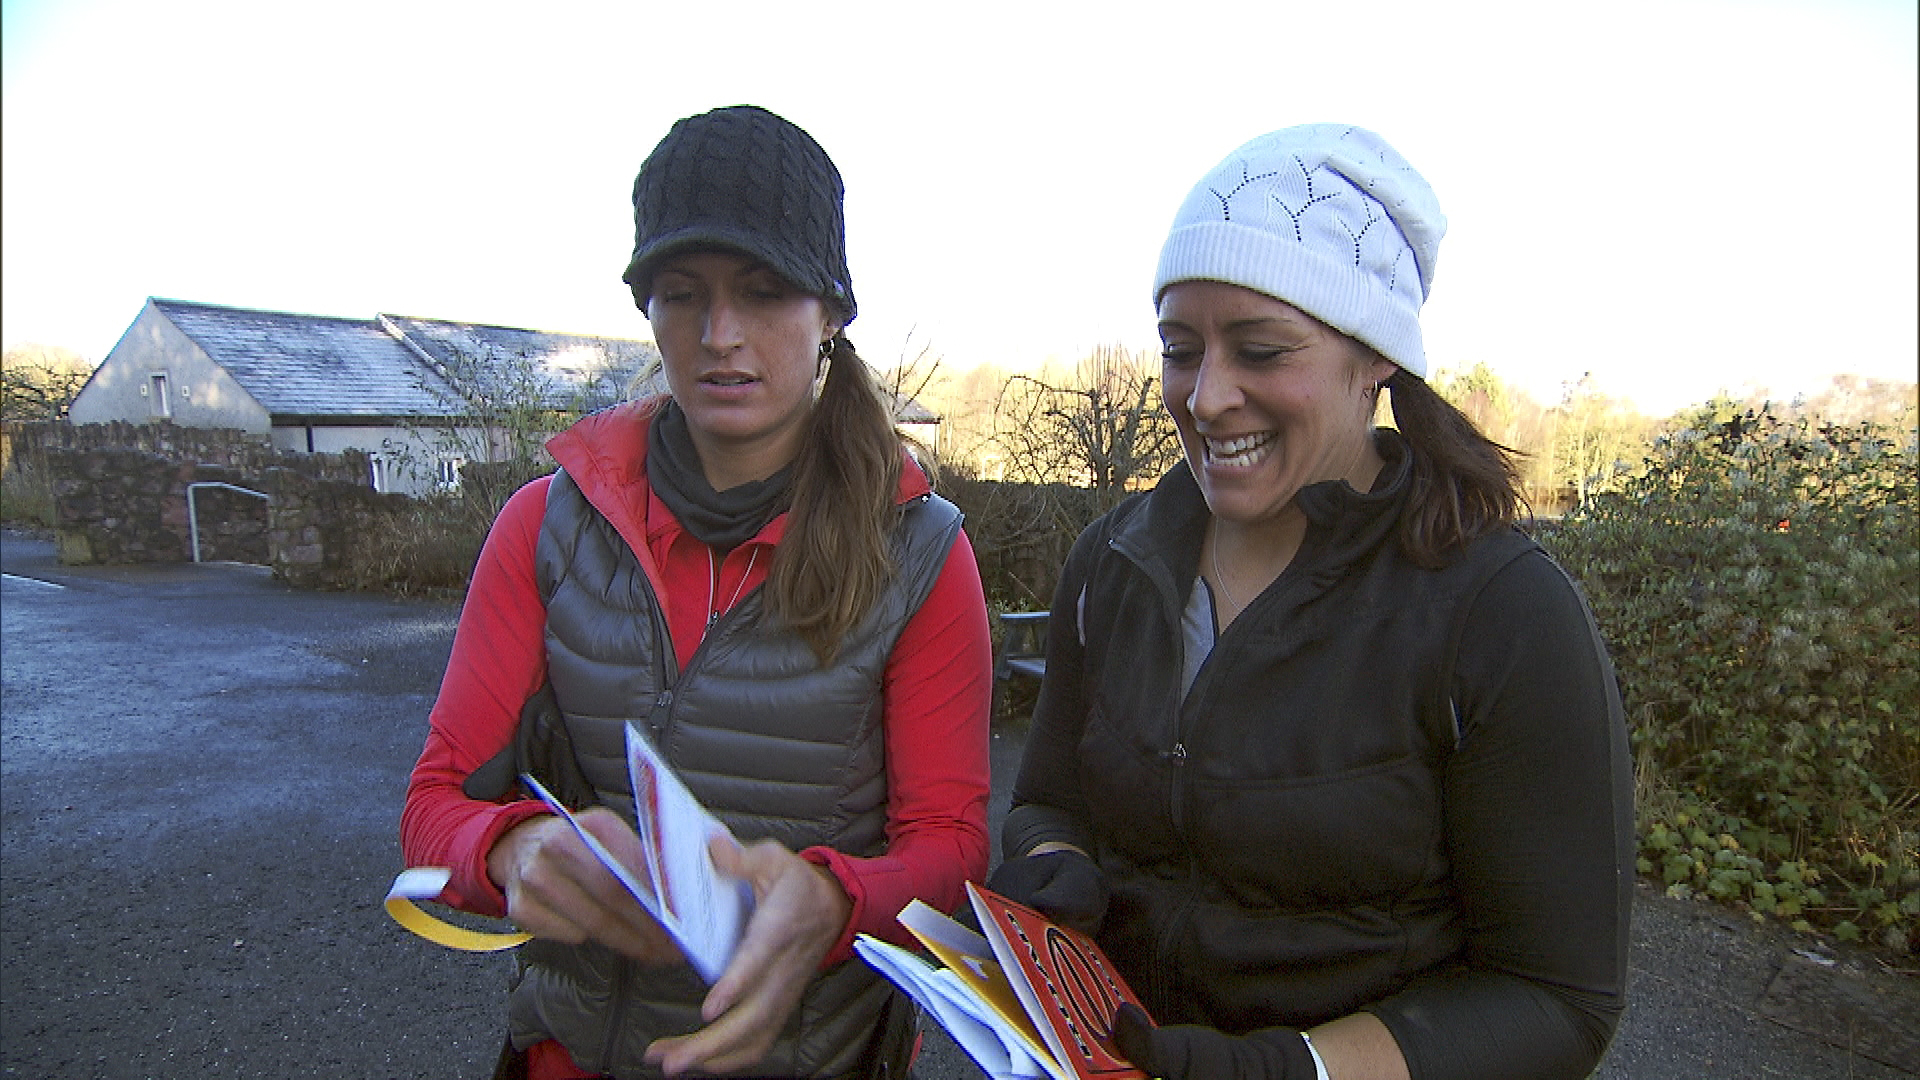 Mona and Beth in the season finale of The Amazing Race